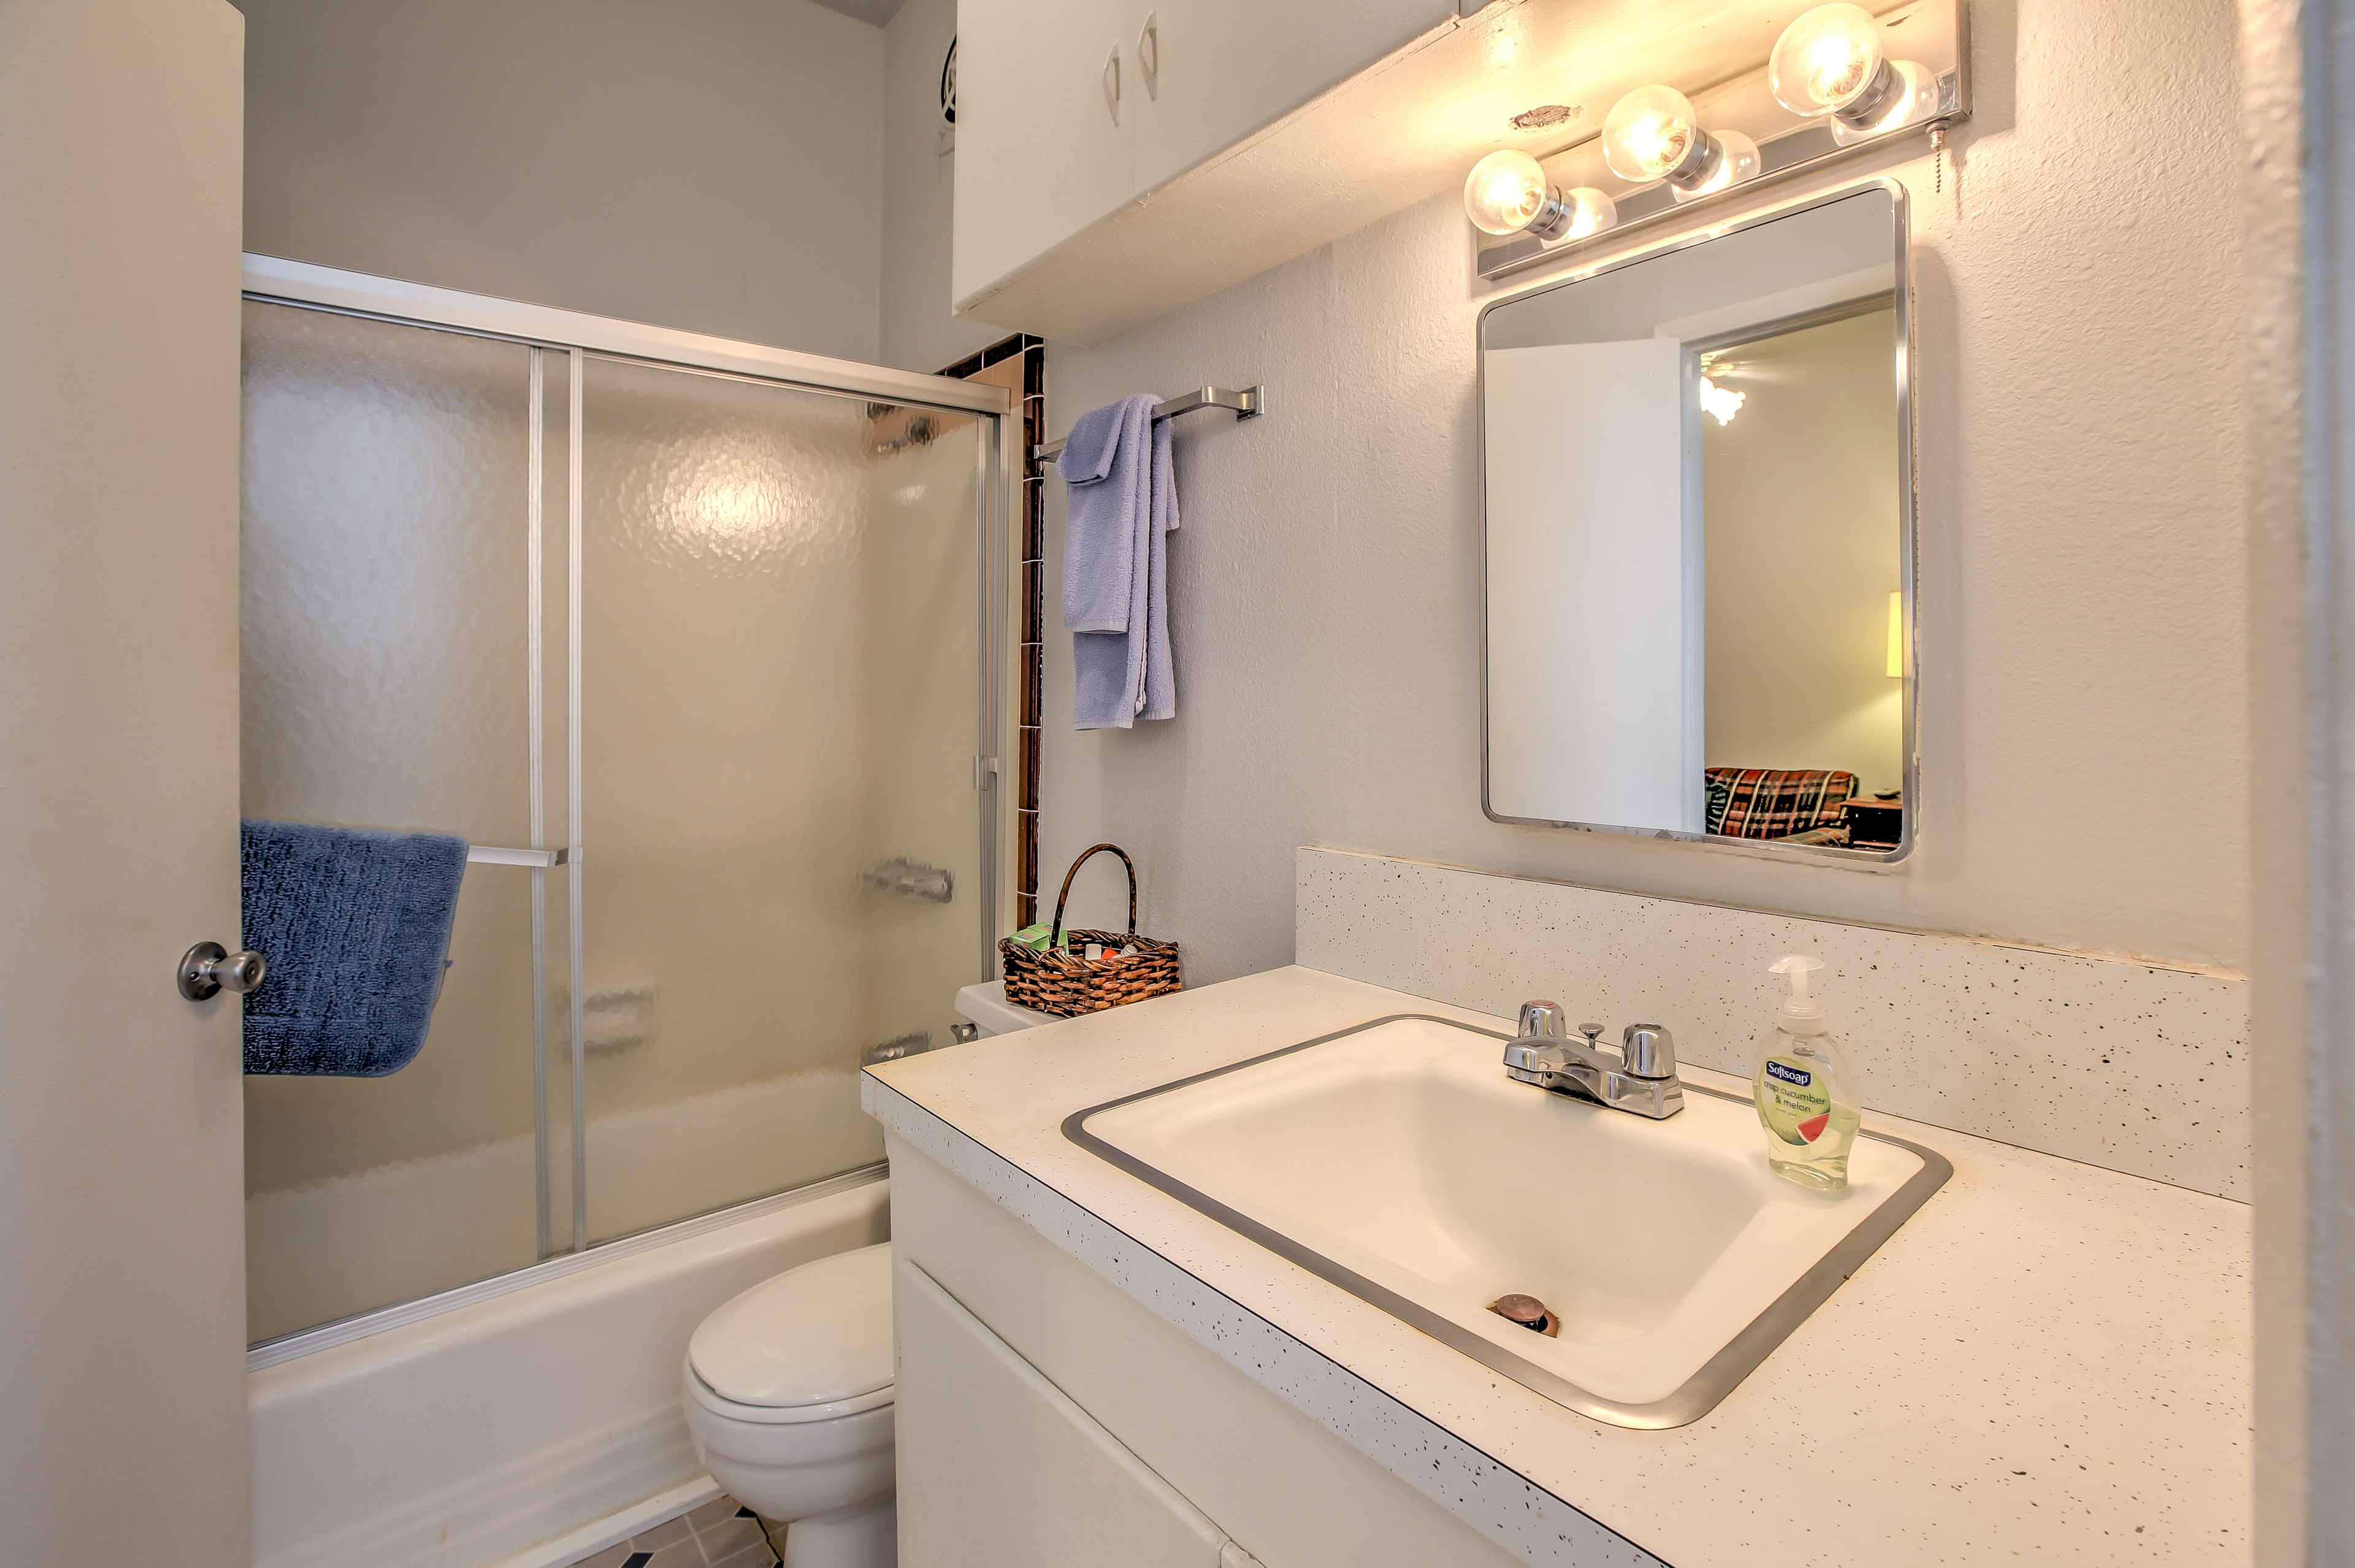 The first bathroom offers a pristine vanity and shower/tub combo.